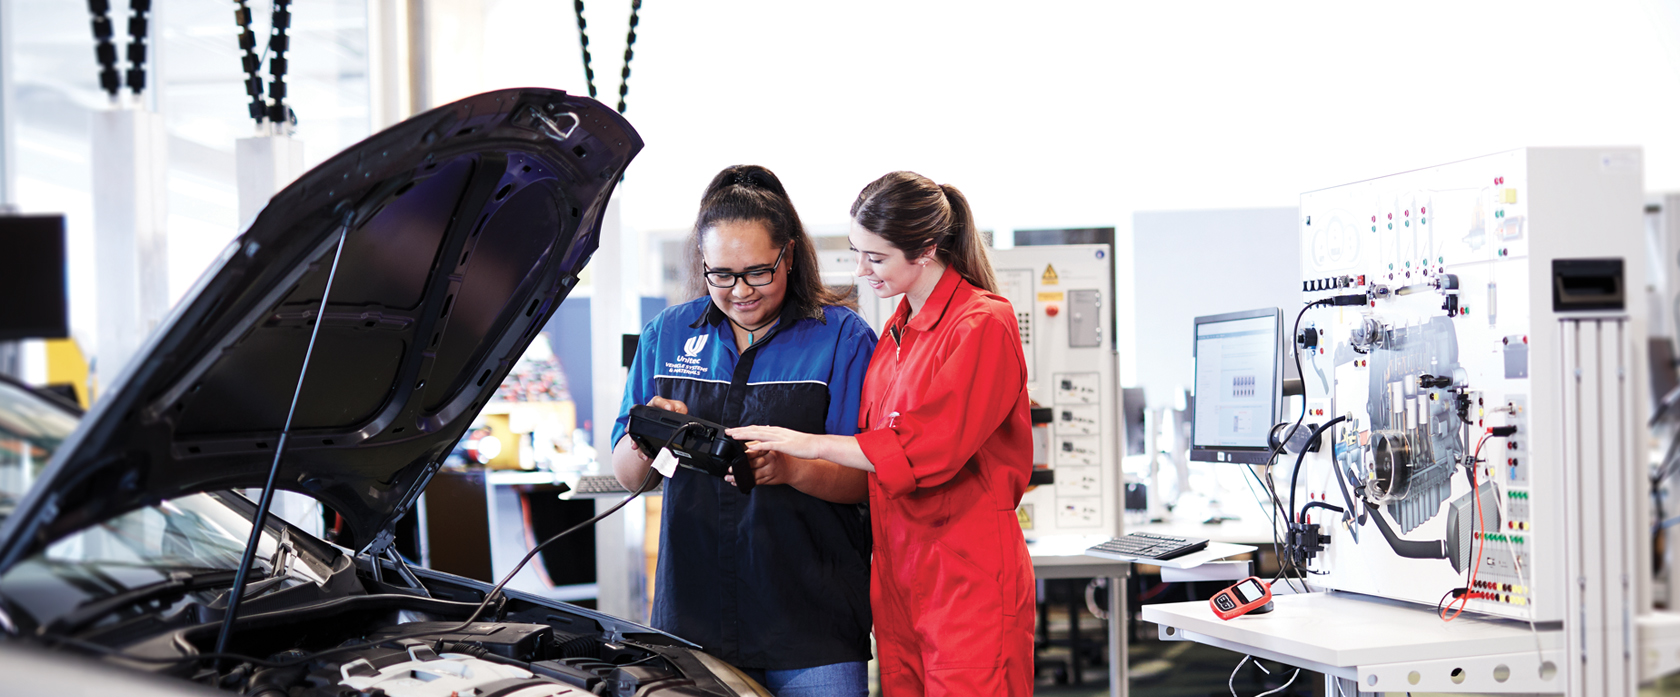 Study Automotive Engineering at Unitec Institute of Technology in Auckland, New Zealand!